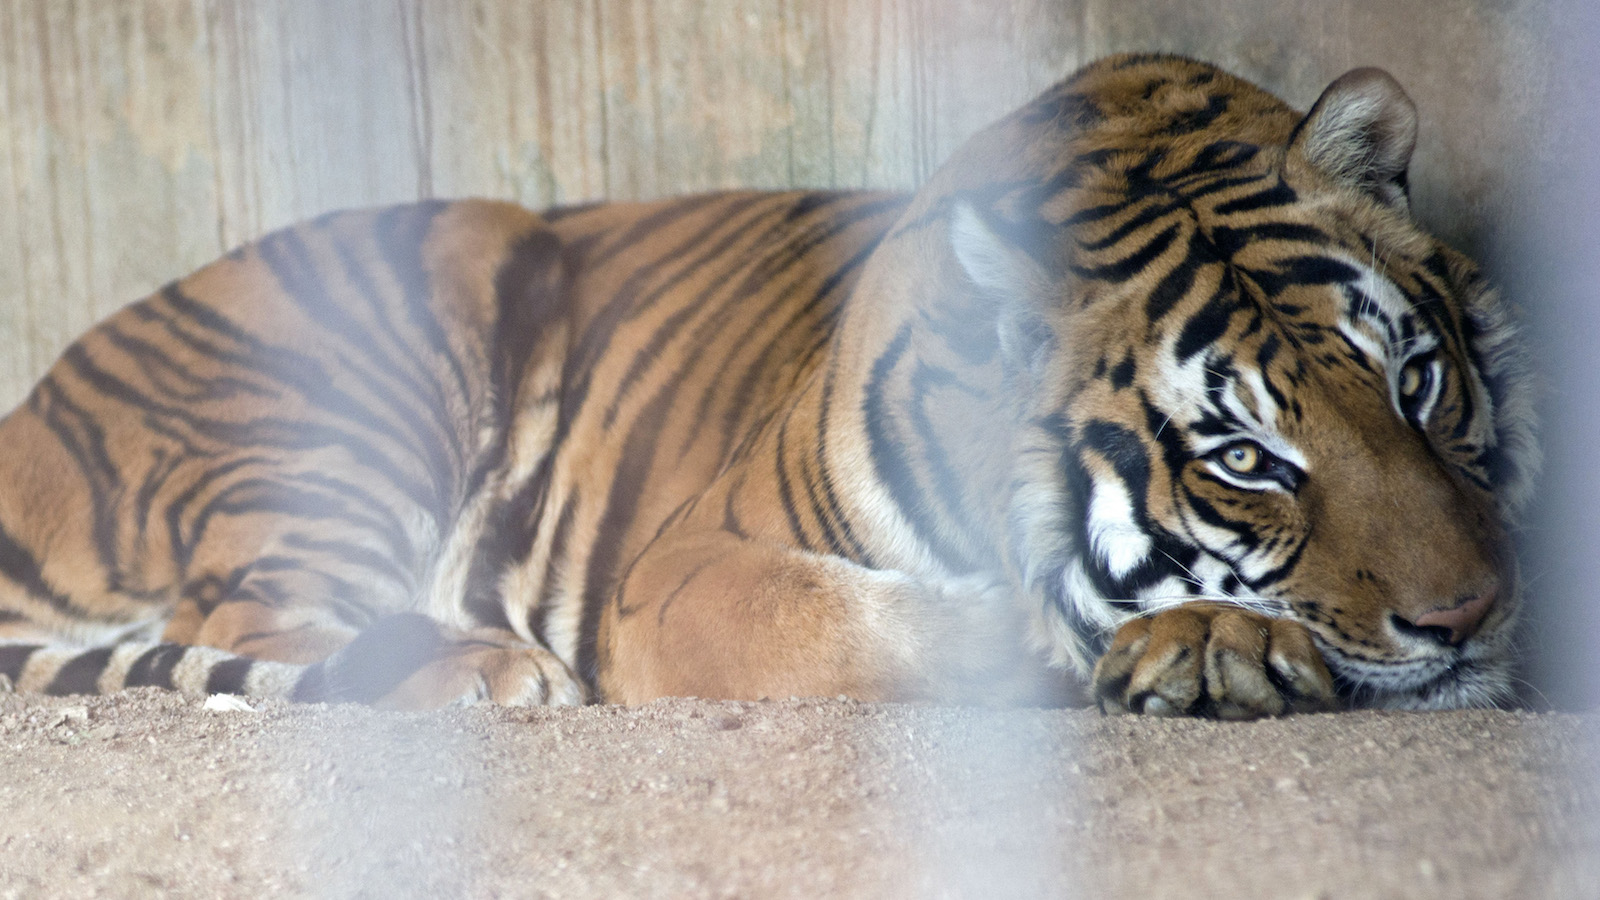 In this Aug. 24, 2013 photo, Hatch, a former circus male tiger, rests in his cage at the city zoo in Montevideo, Uruguay. Hatch has lived in a cage since he was traded to the Villa Dolores Zoo which is now looking to send him to a sanctuary in the U.S.  There is a surplus of big cats in captivity, according to the World Wildlife Foundation. (AP Photo/Matilde Campodonico)